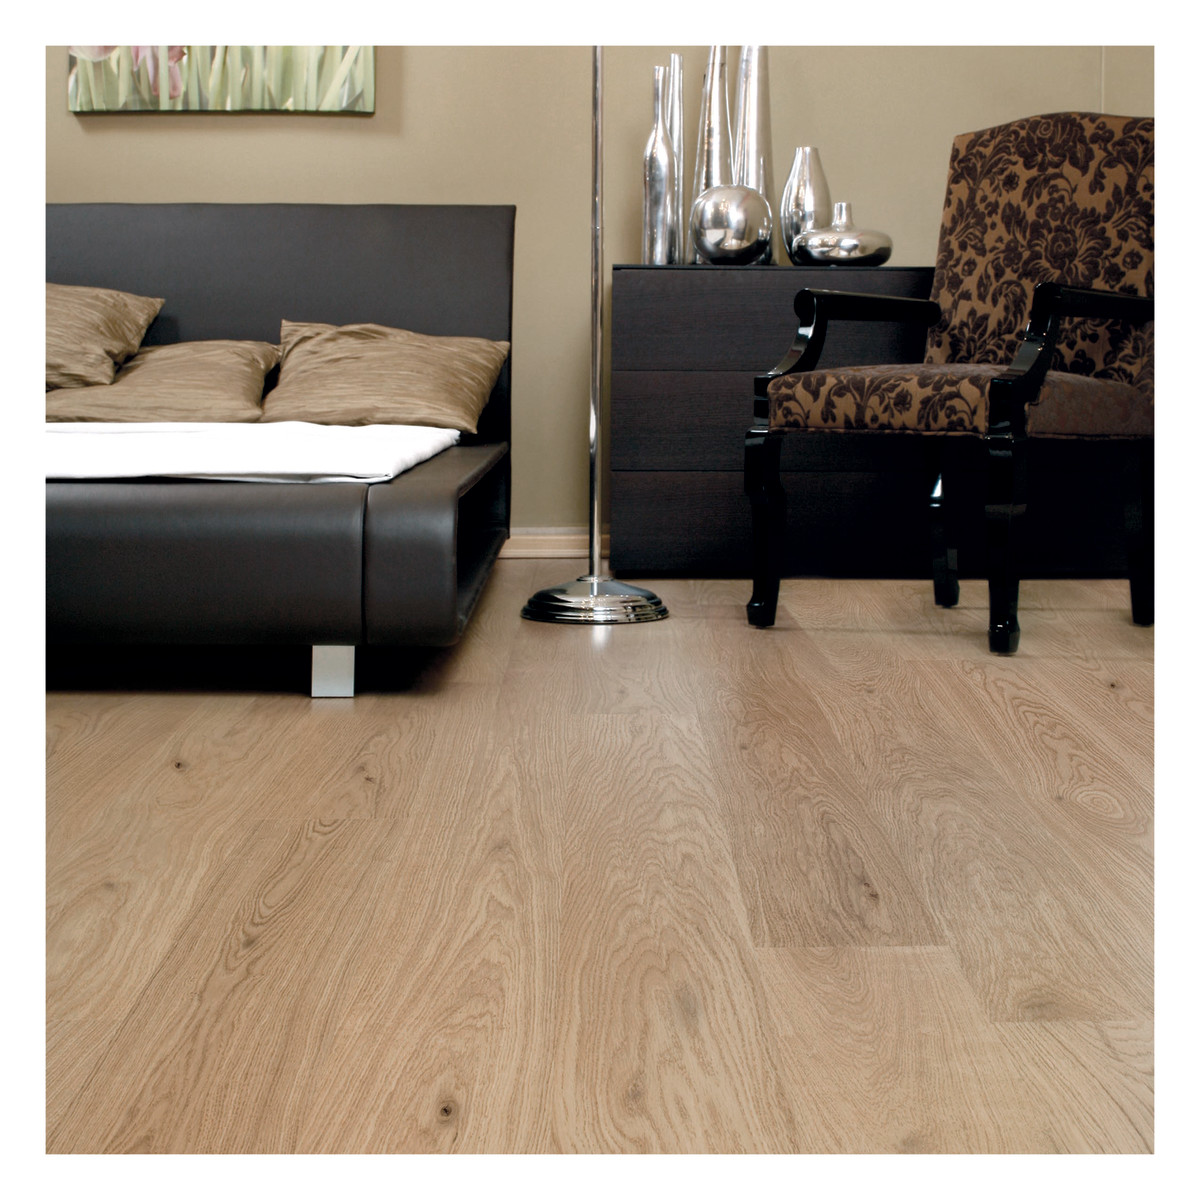 Piastrelle tipo parquet leroy merlin for Leroy merlin piastrelle